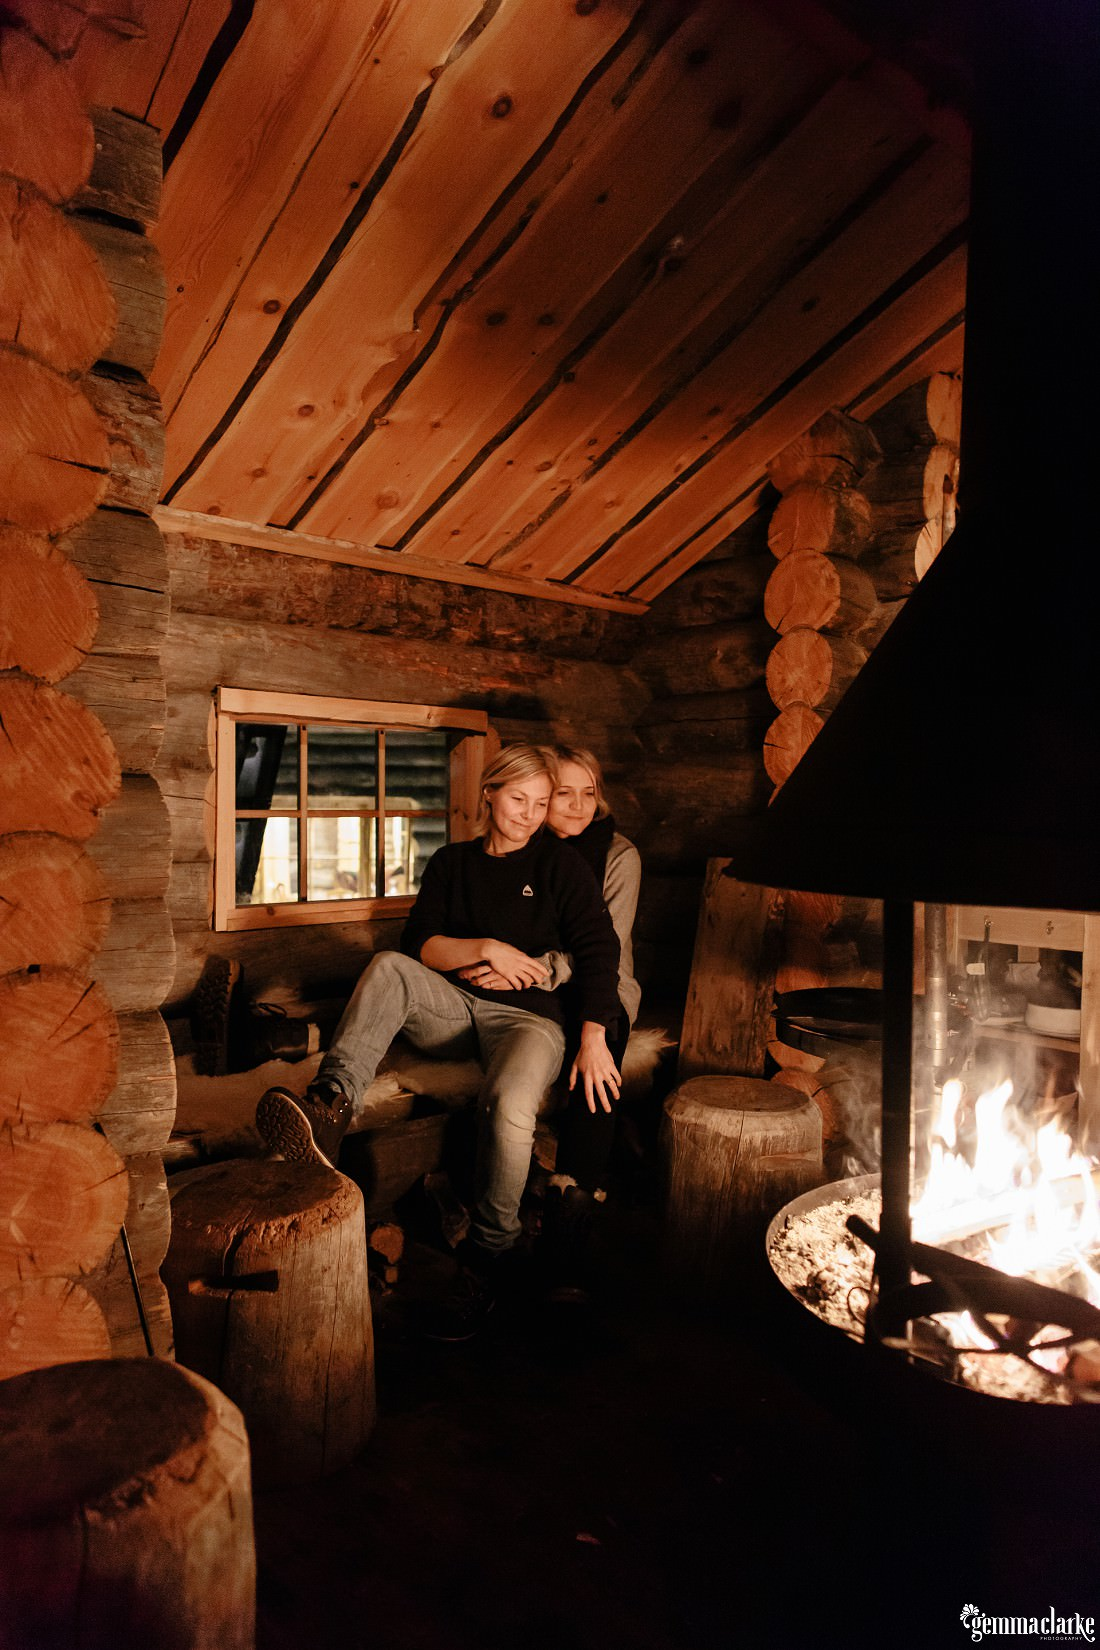 A couple embrace on a bench in front of a fireplace in a wood cabin